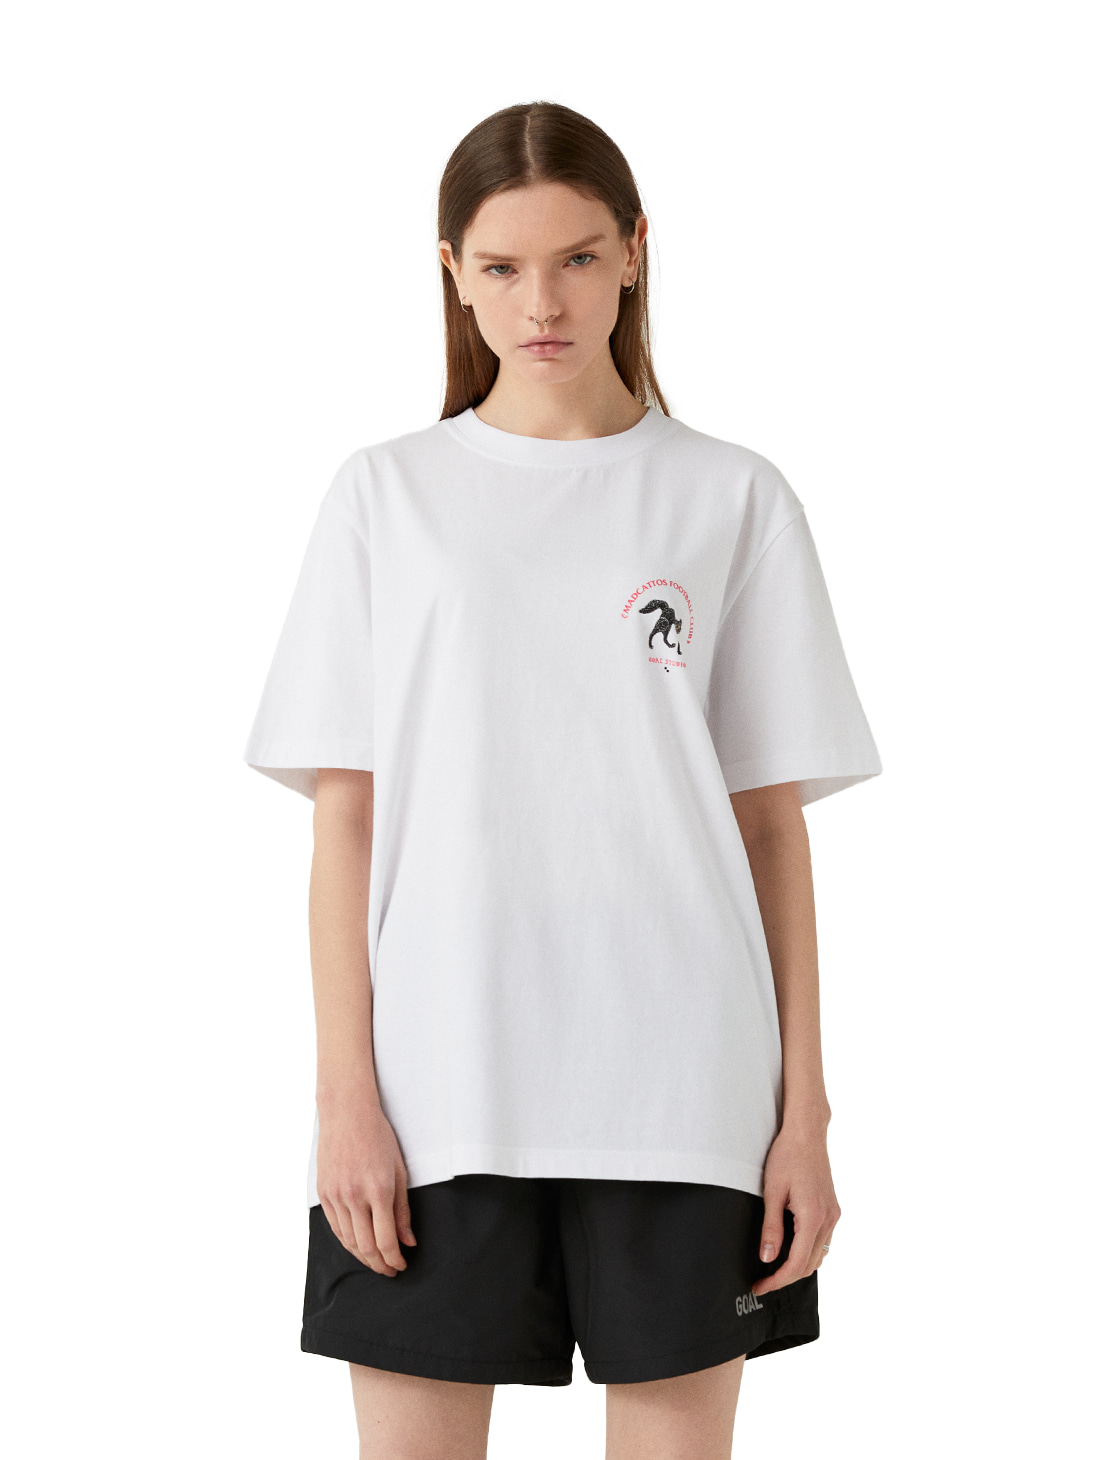 MC SMALL FRONT GRAPHIC TEE - WHITE